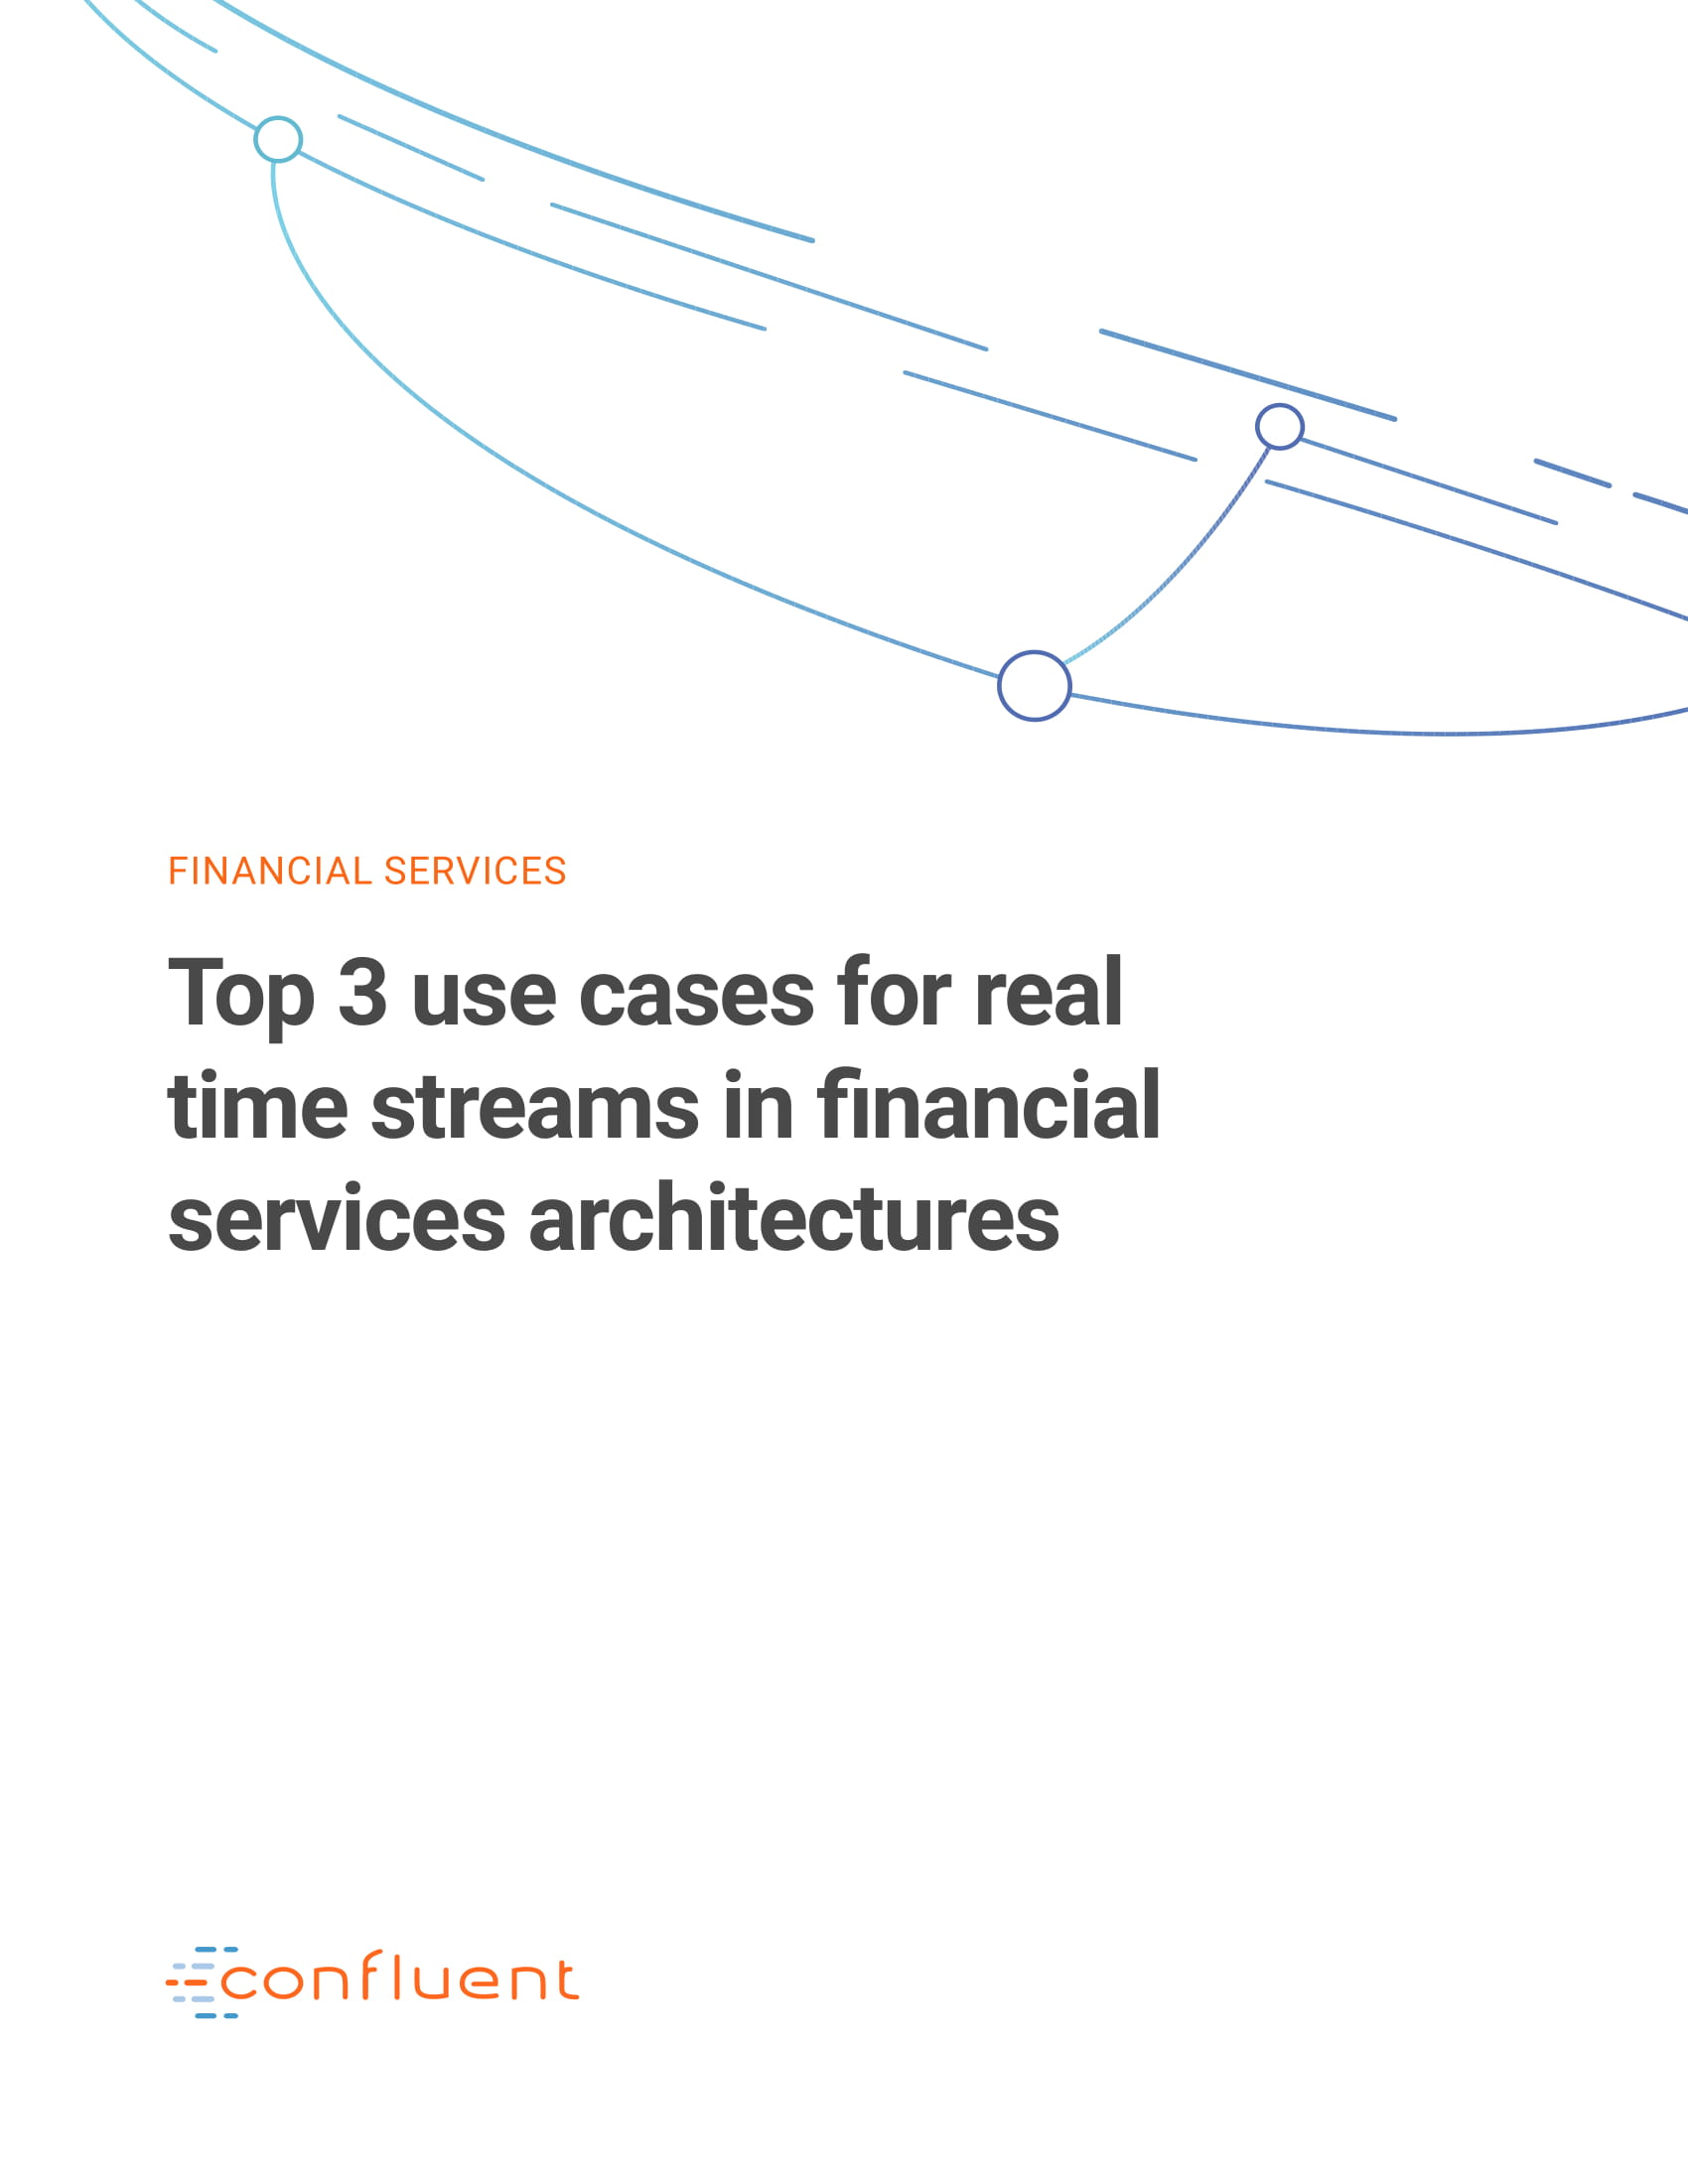 Top 3 Streaming Use Cases for Financial Services